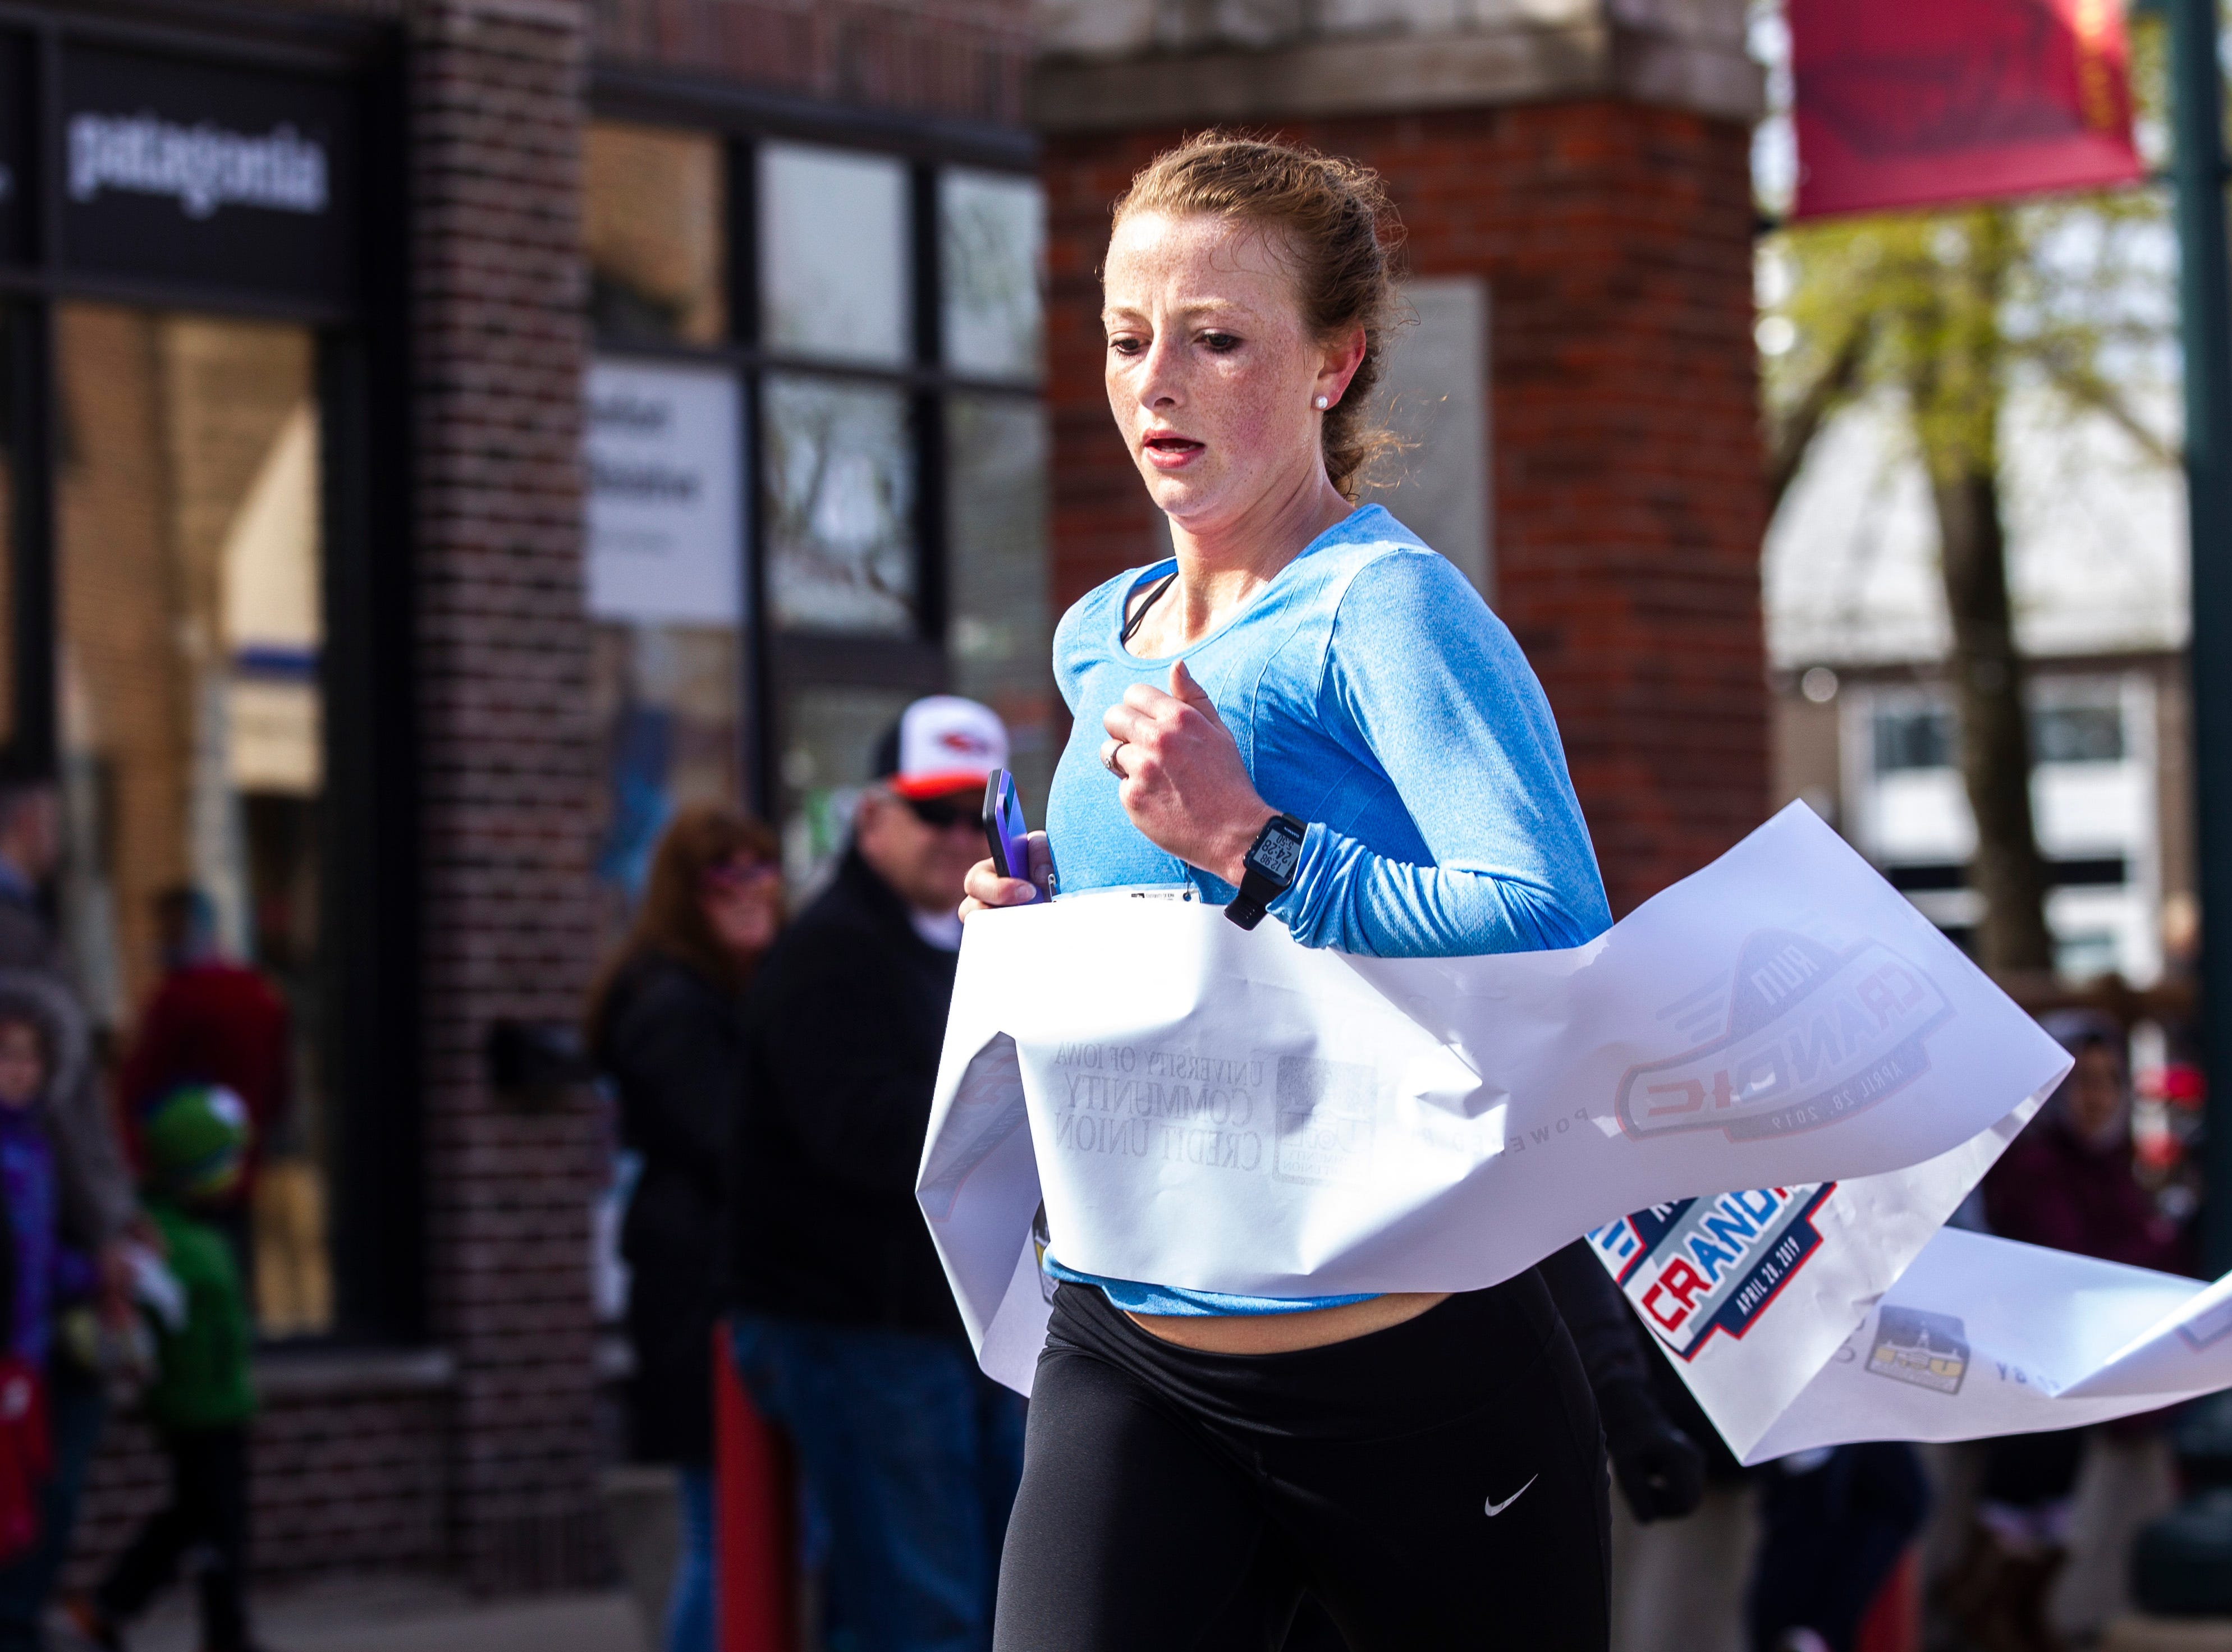 Regan Weidner crosses the finish line to be the first woman to finish the half marathon during the second annual Run CRANDIC marathon, Sunday, April 28, 2019, along 16th Avenue SE in Cedar Rapids, Iowa. Weidner finished with a time of 1:24:26.